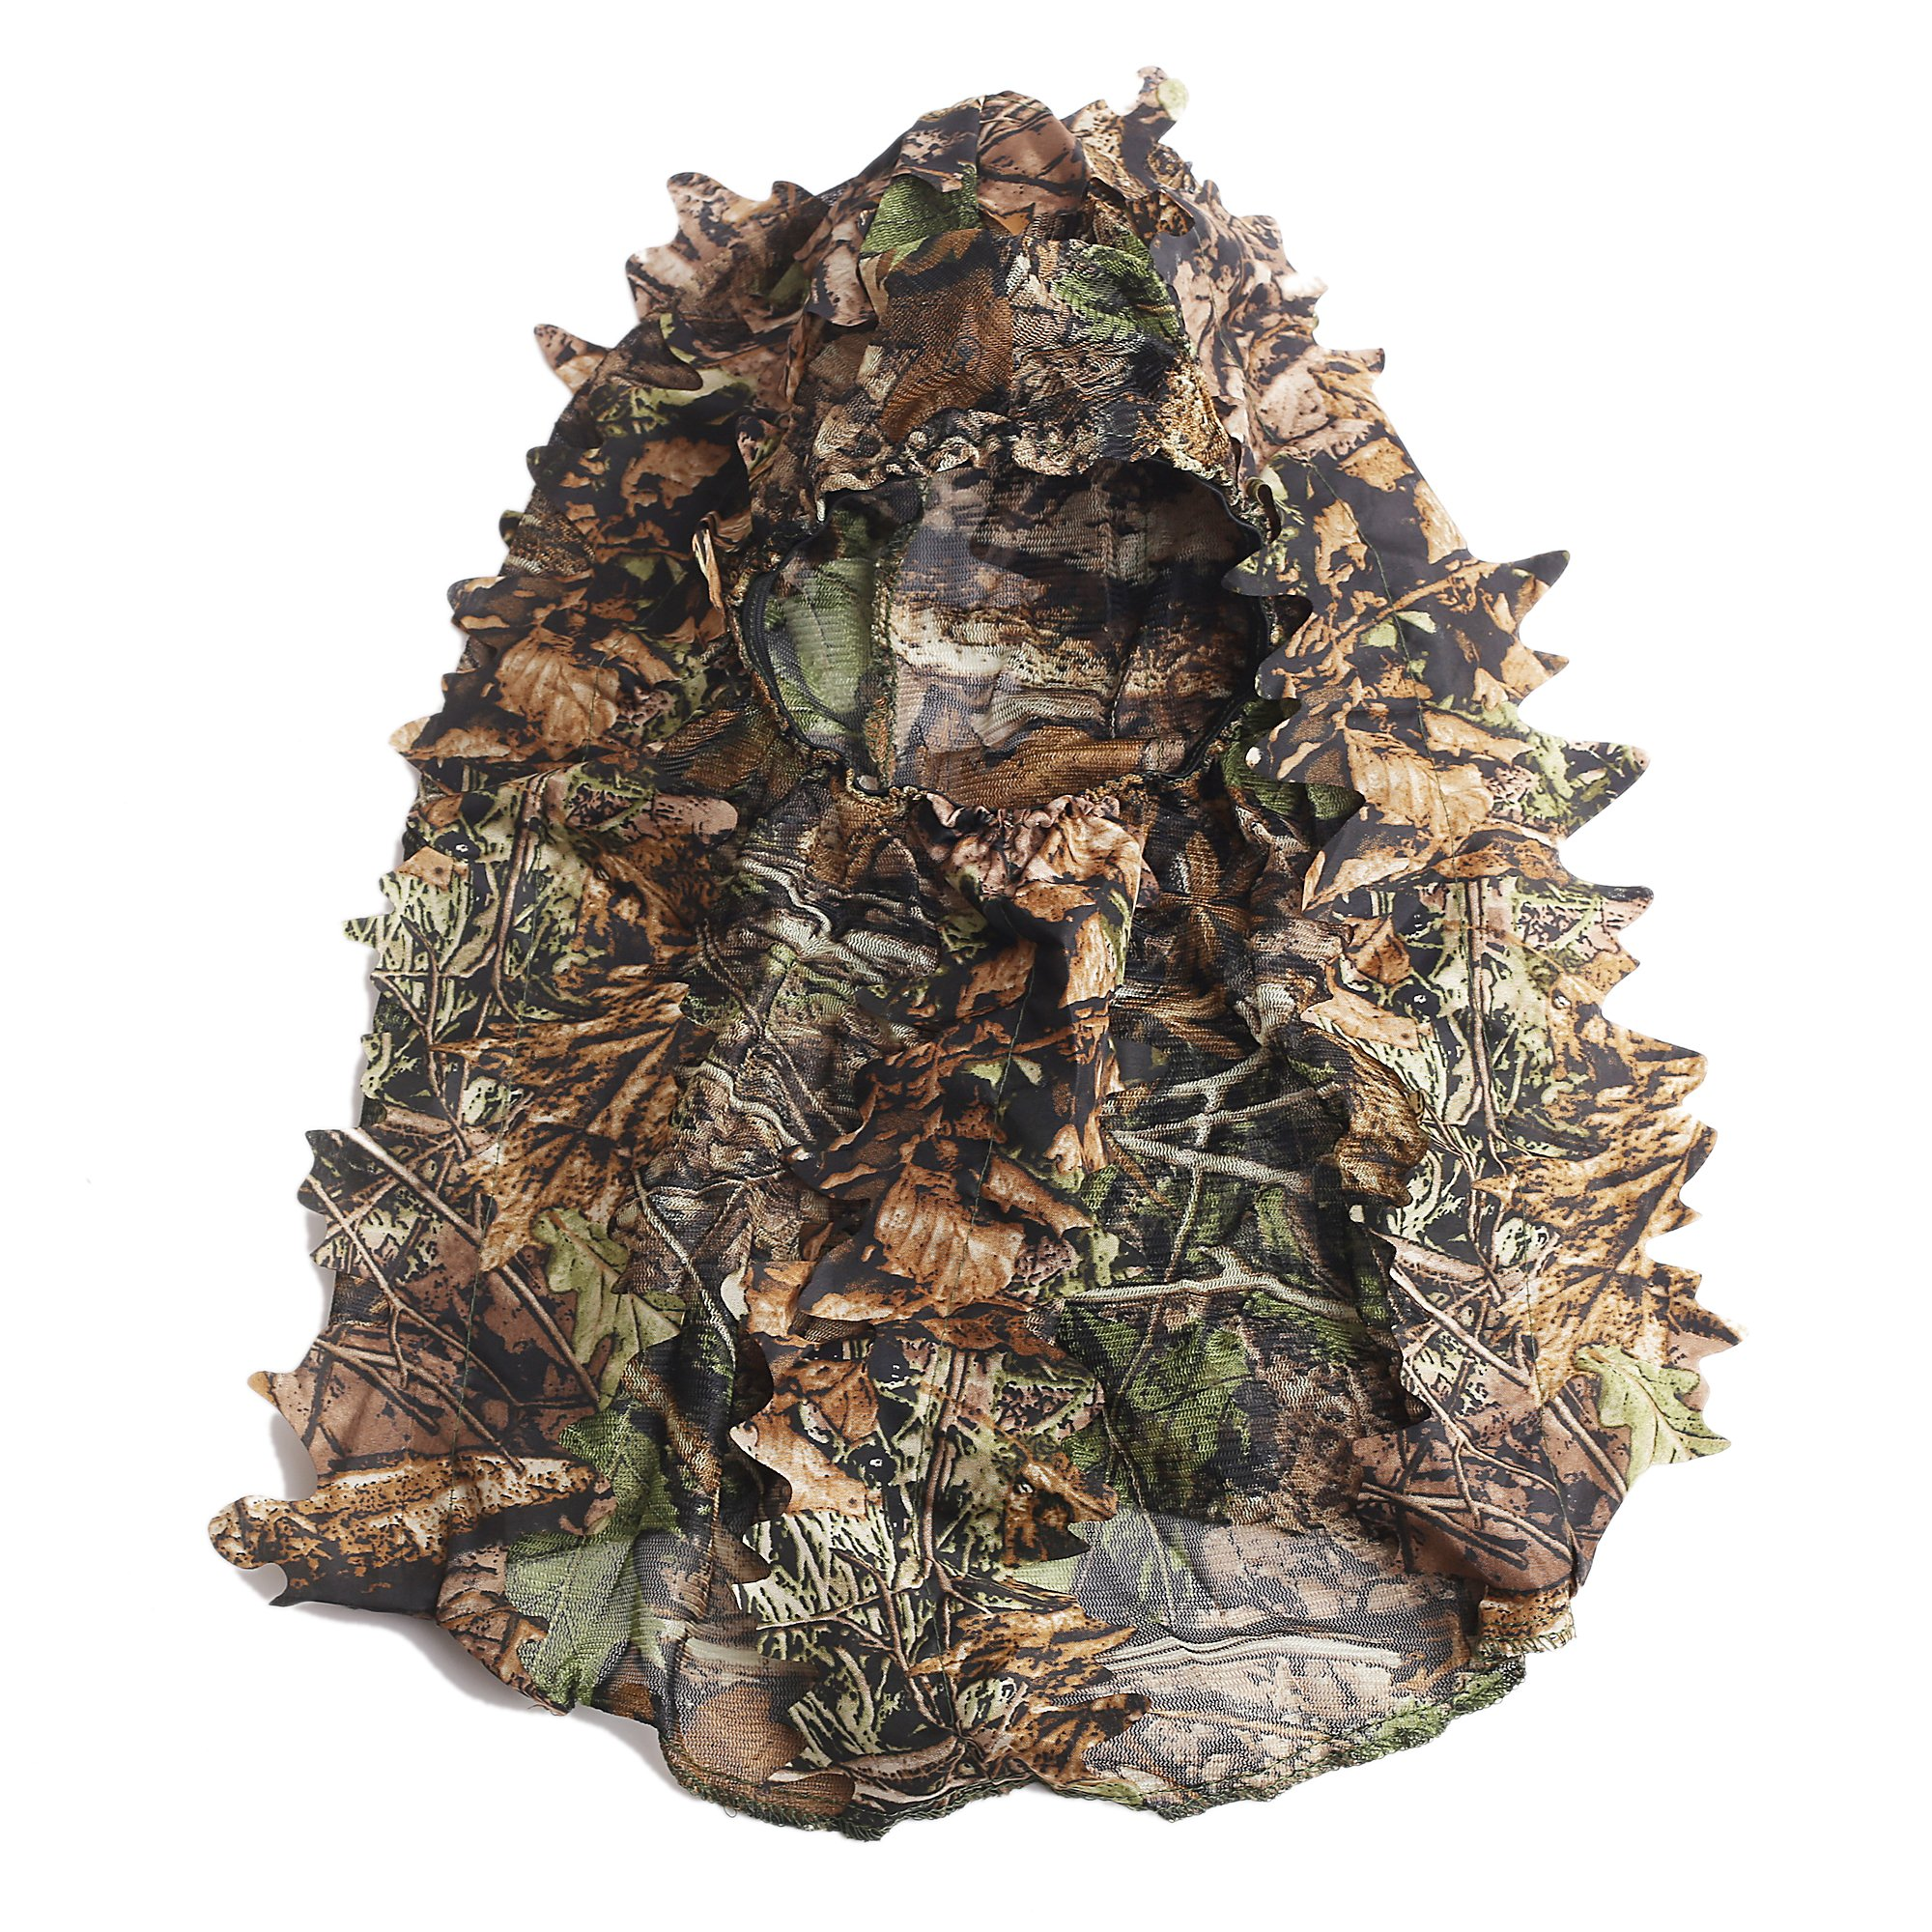 ABCAMO Light Weight Hunting Camouflage Full Cover 3D Leafy Face Mask by ABCAMO (Image #4)